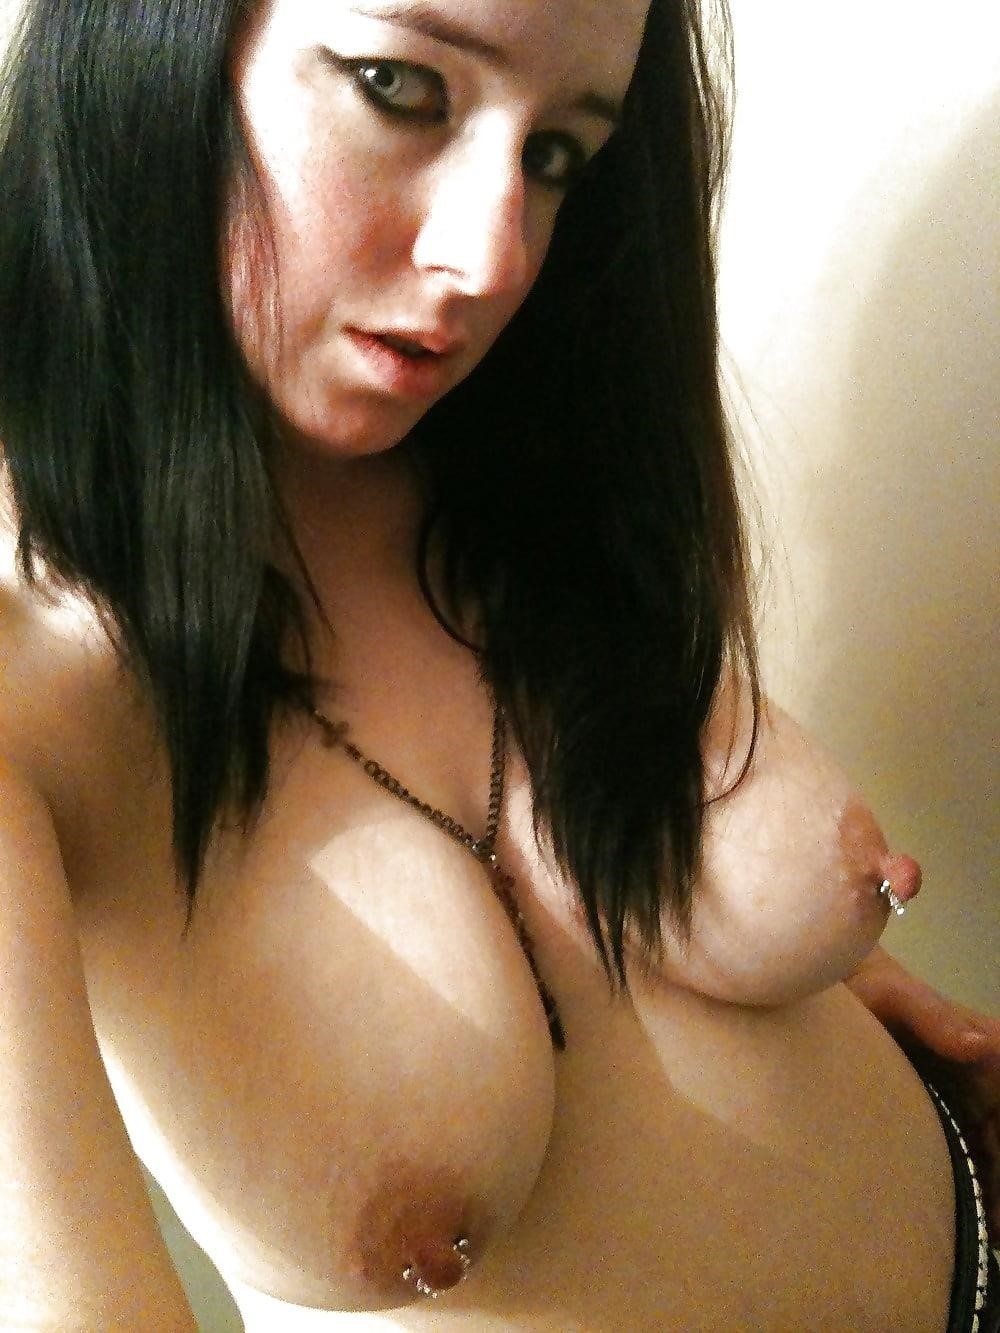 Teen long nipples pics-2900